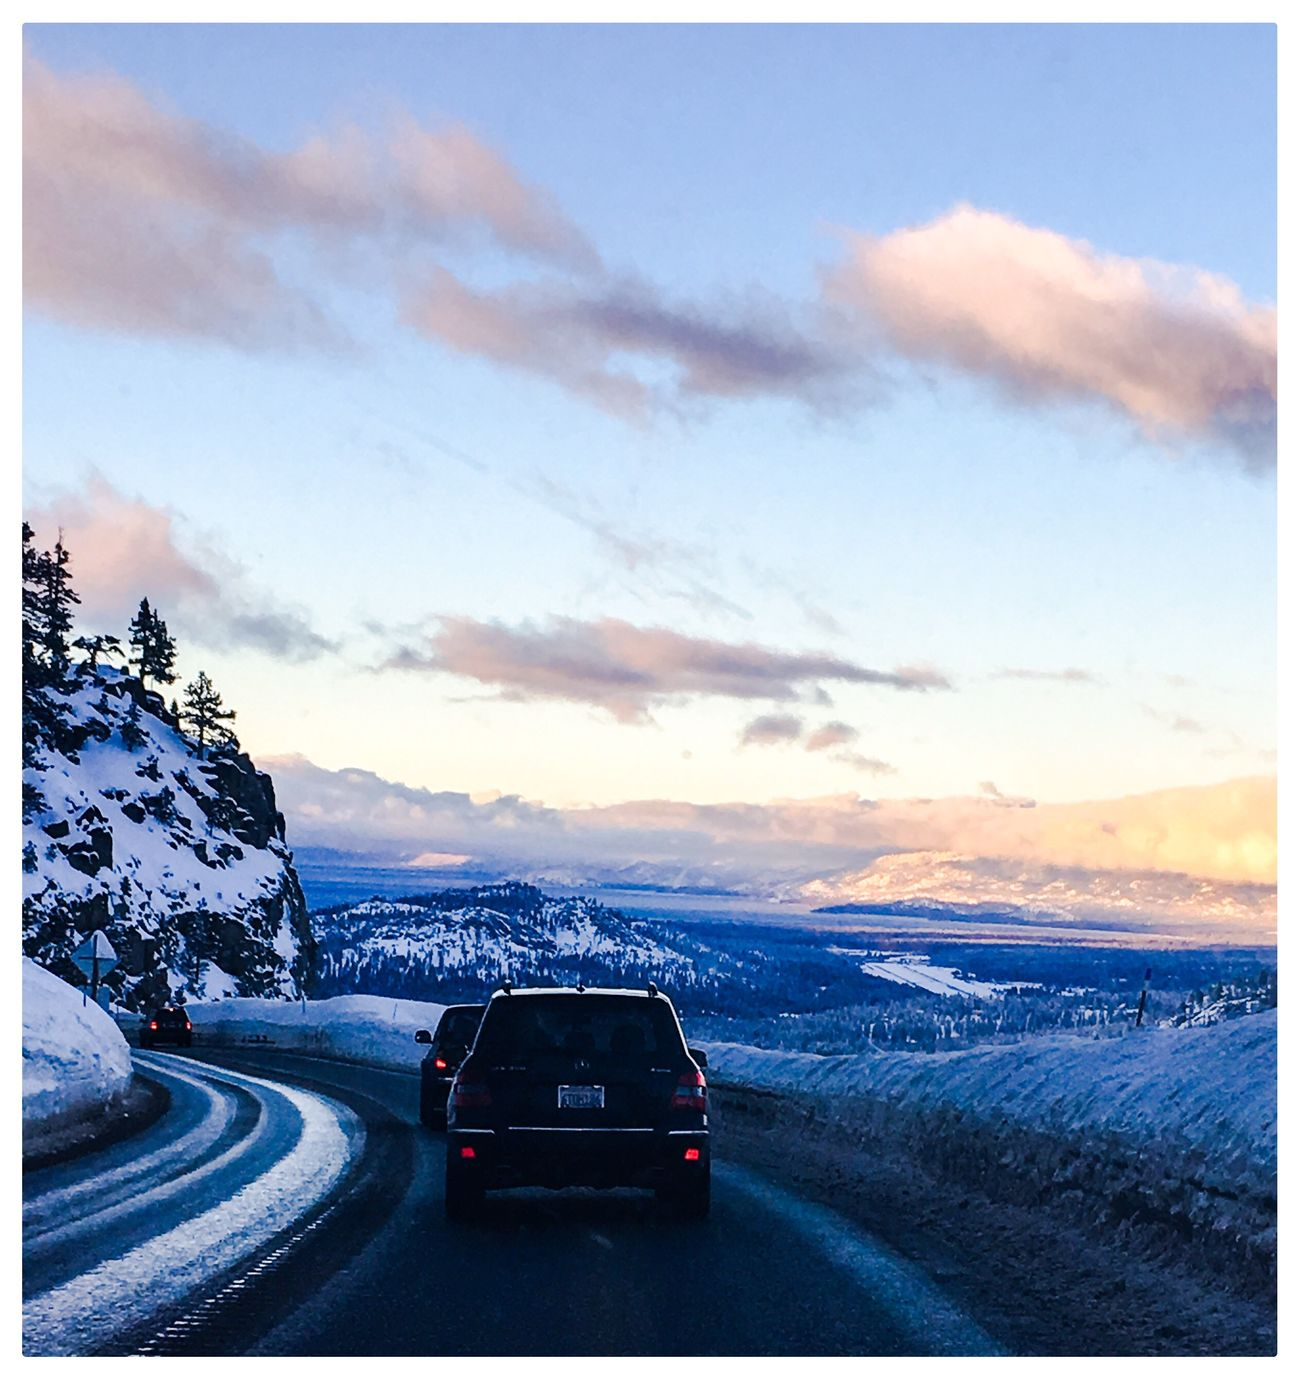 IPhoneography Taking Photos Architecture Car Transportation Sky Cloud - Sky Road Travel Land Vehicle Mode Of Transport Sunset Landscape Mountain No People Nature Cold Temperature Beauty In Nature Outdoors Day